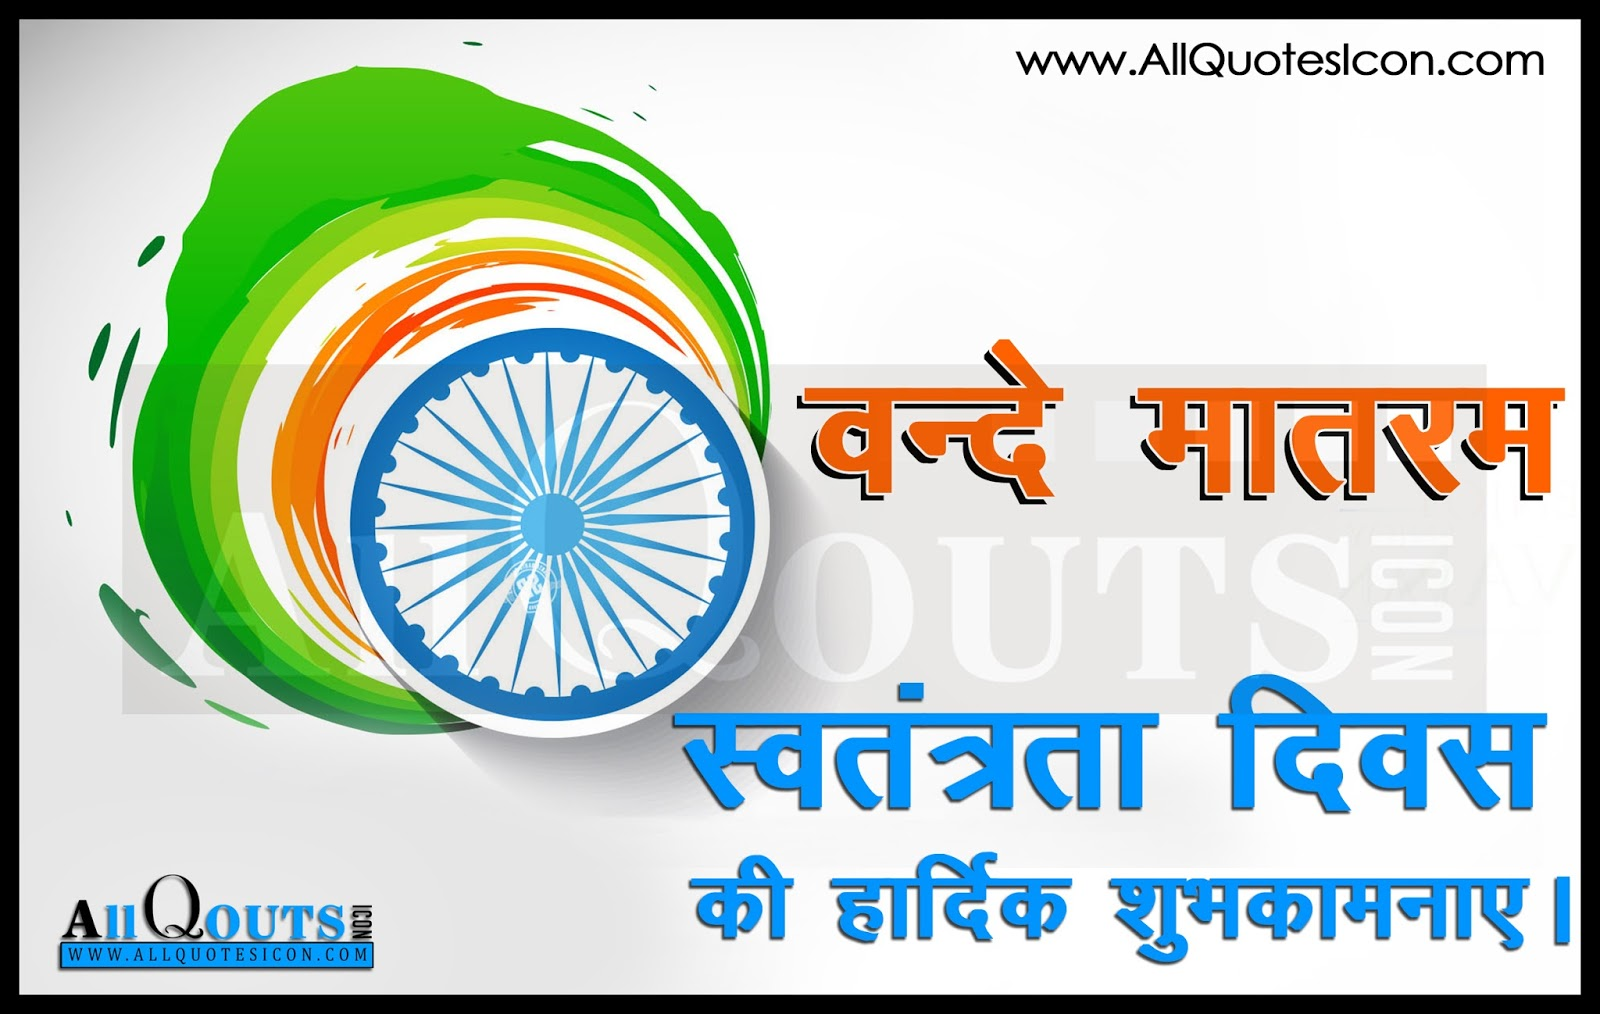 Marvelous Hindi Independence Day Quotes Images Motivation Inspiration Thoughts